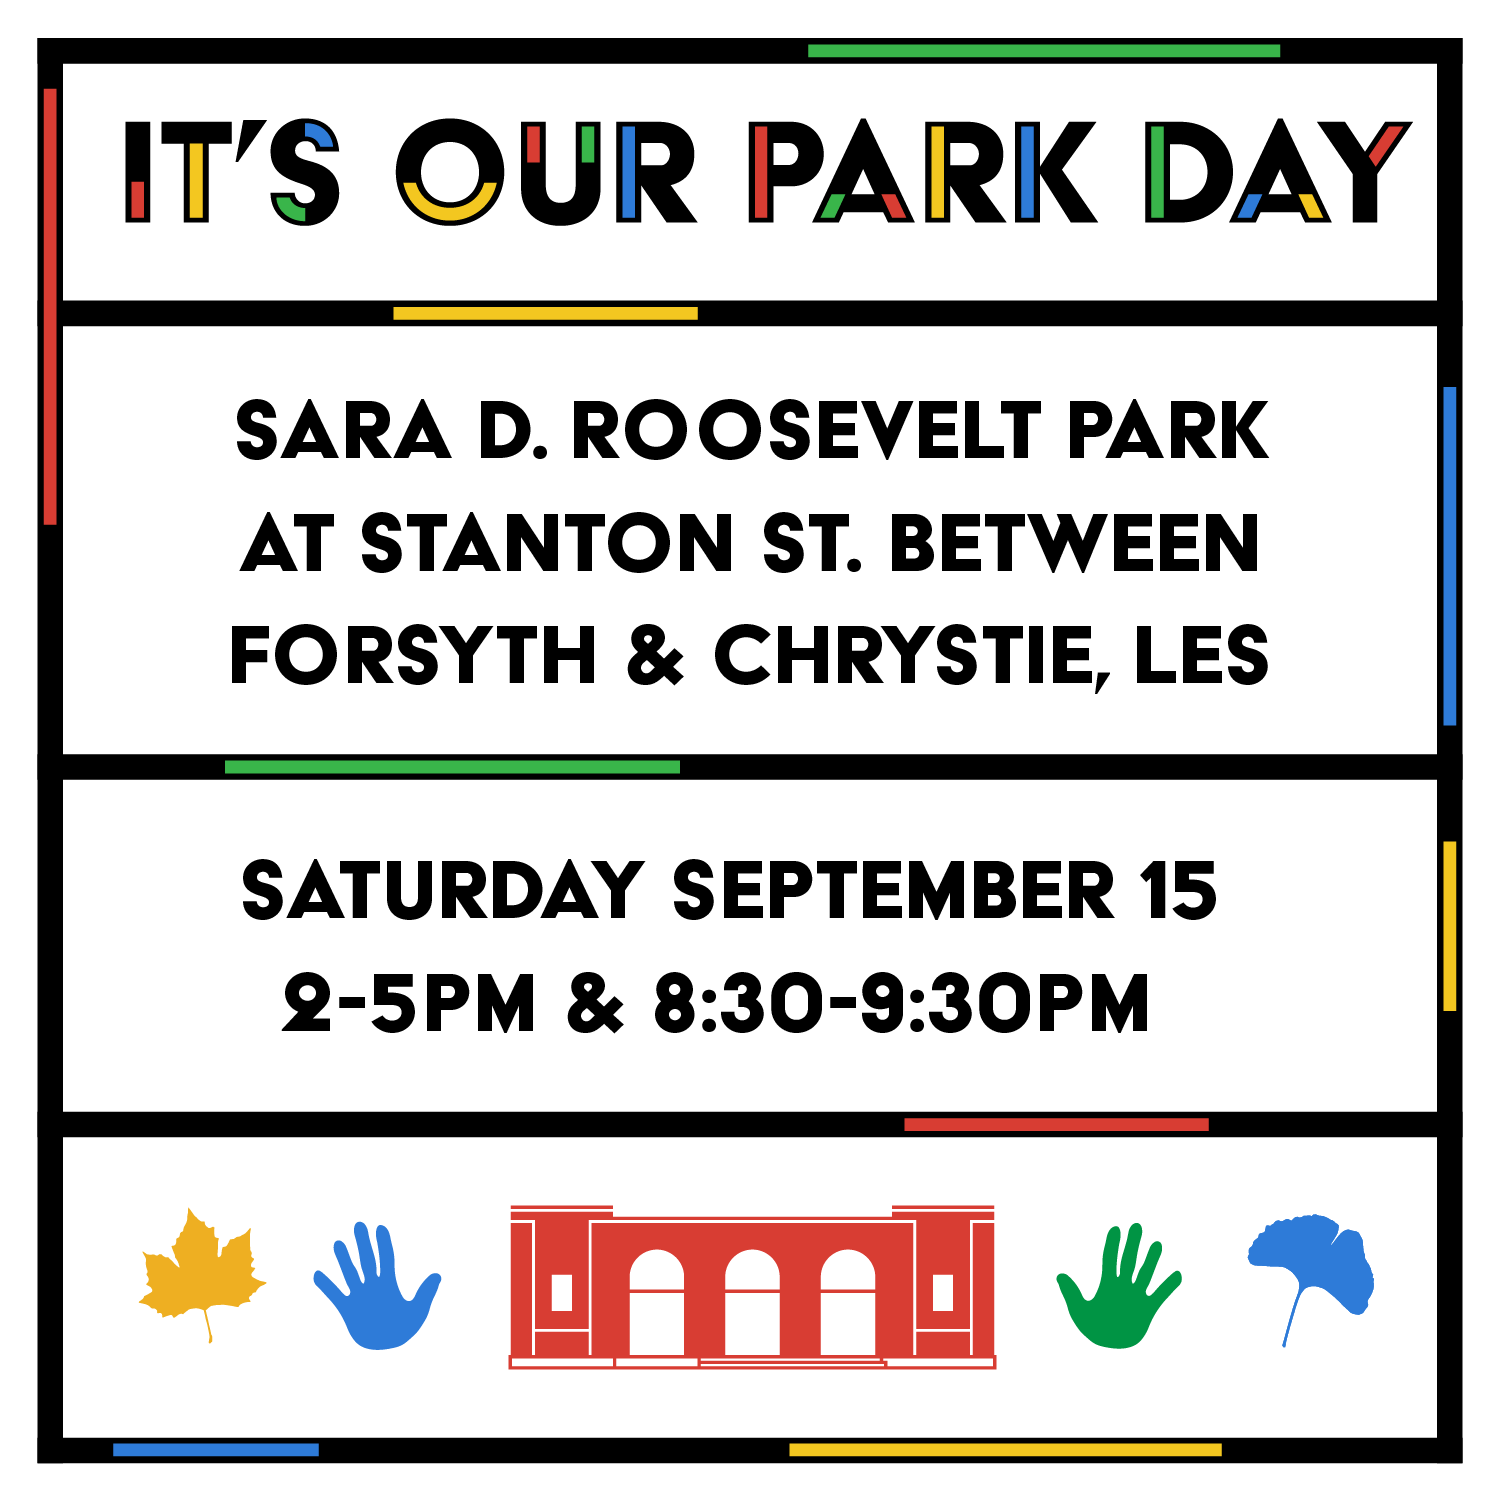 """graphic for It's Our Park Day event that reads """"It's Our Park Day Sara D. Roosevelt Park at Stanton St. Between Forsyth & Chrystie, LES, Saturday September 15 2-5PM & 8:30-9:30PM"""""""